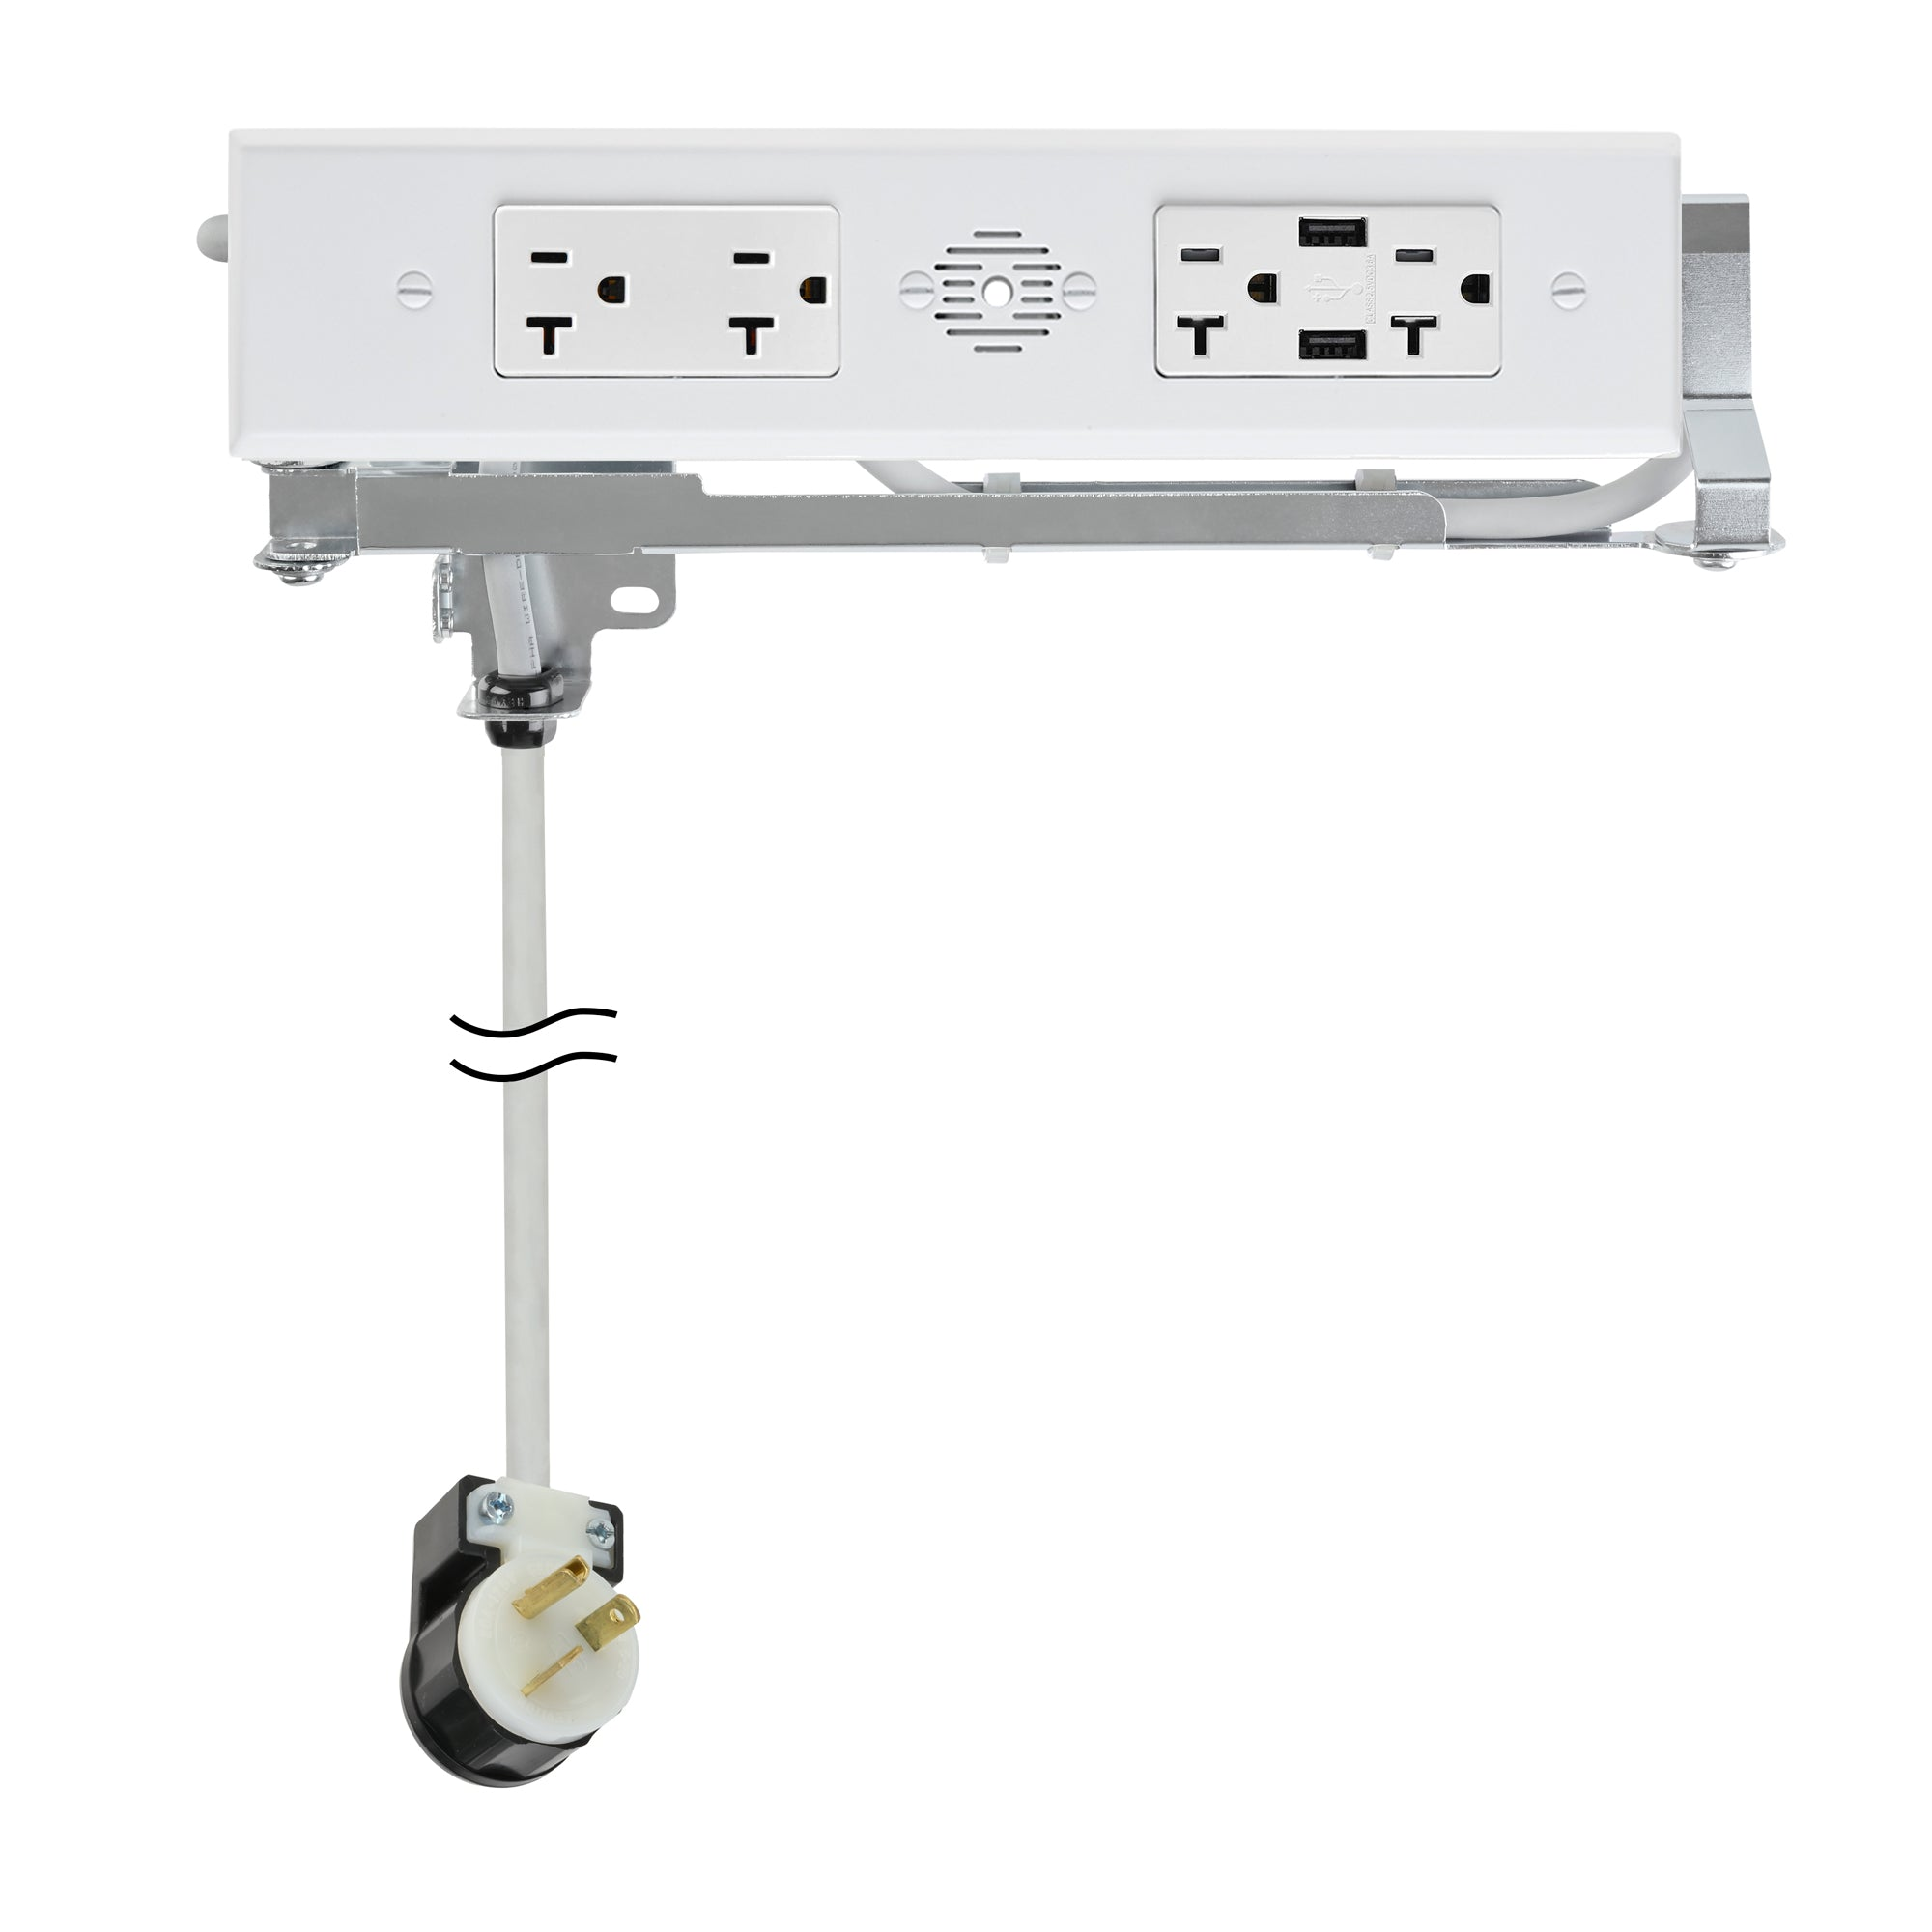 20 amp Blade Duo In Drawer Outlets - Additional Outlet Configurations